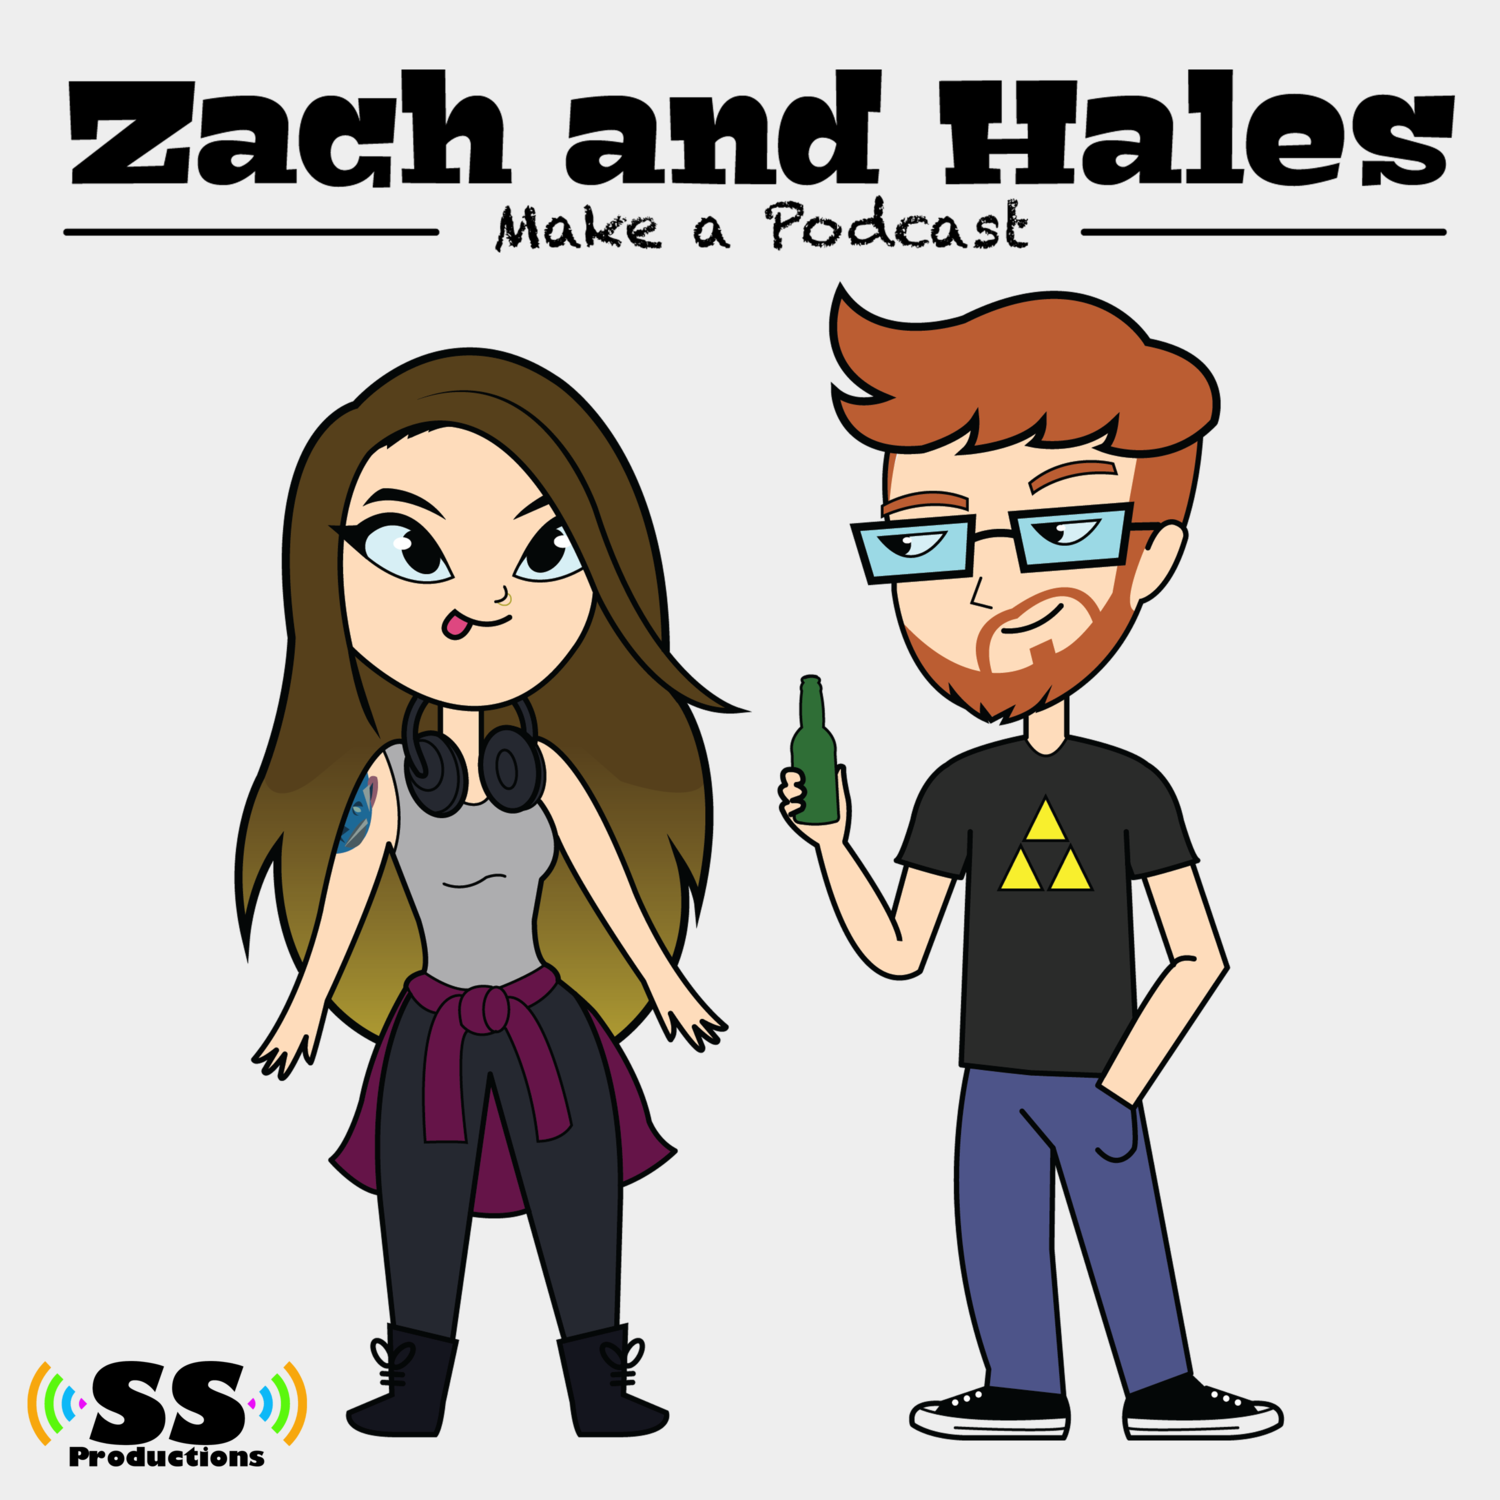 Zach and Hales Make a Podcast